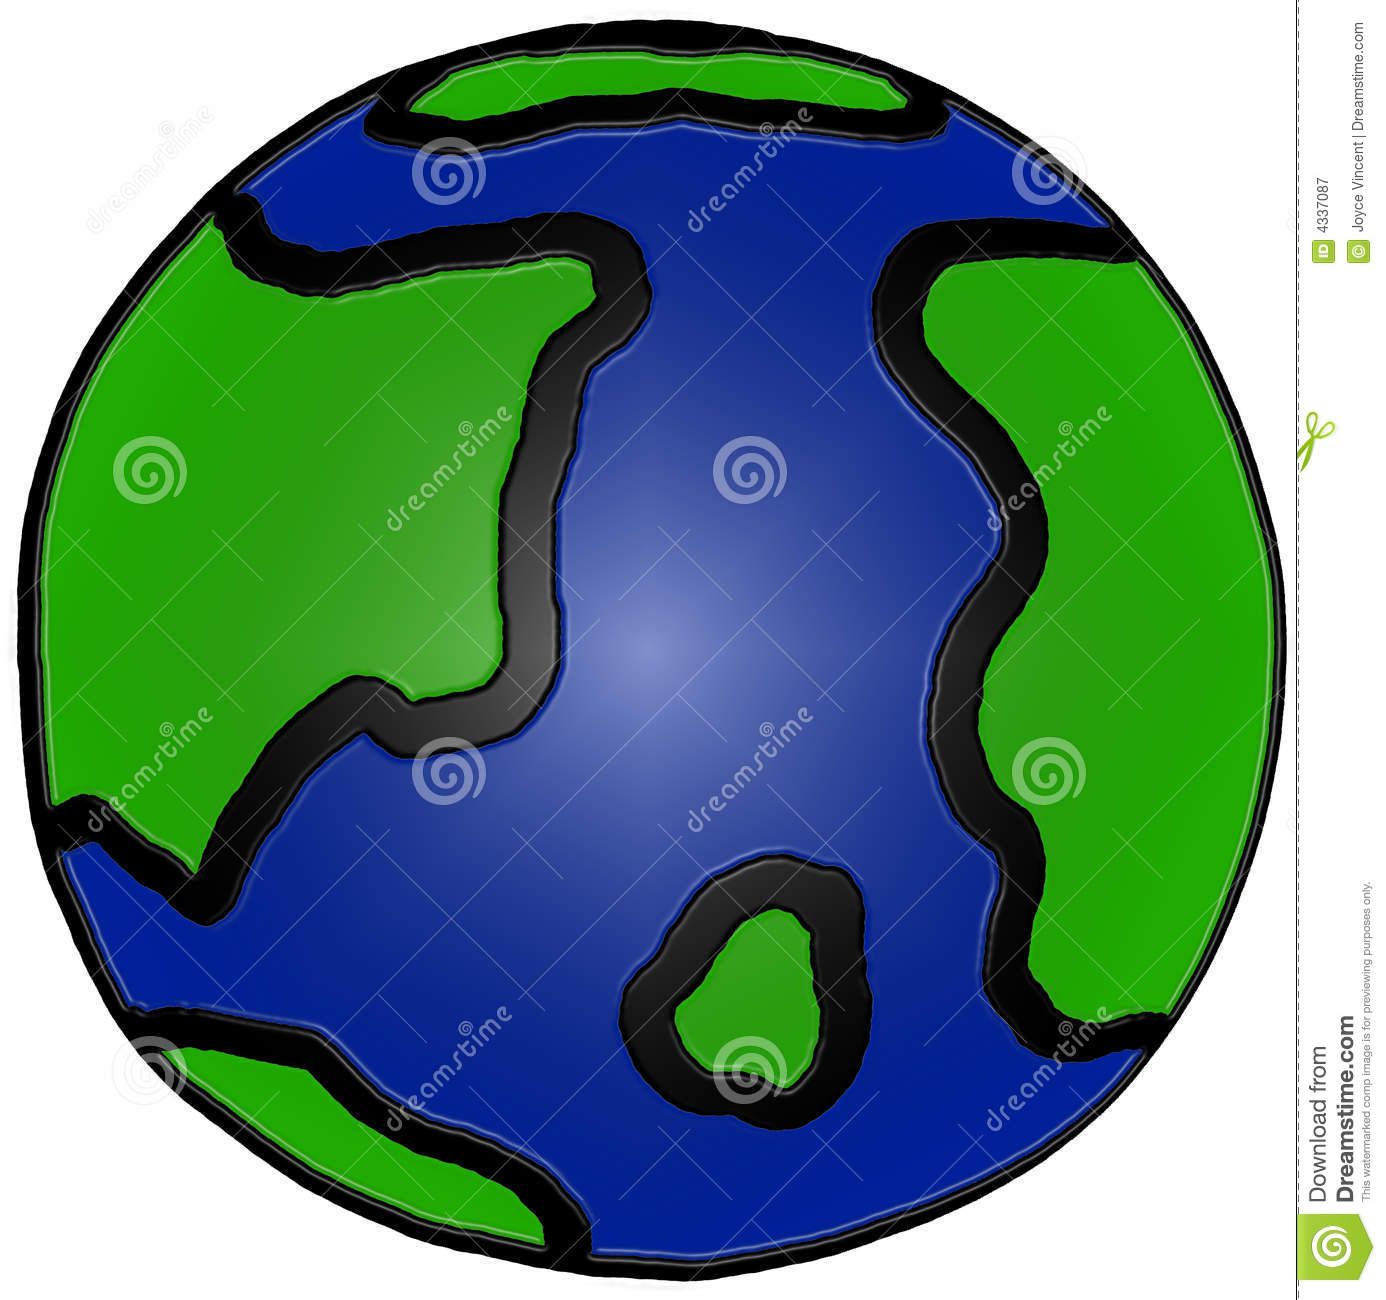 Cute hand drawn earth illustration royalty free stock for Easy to draw earth